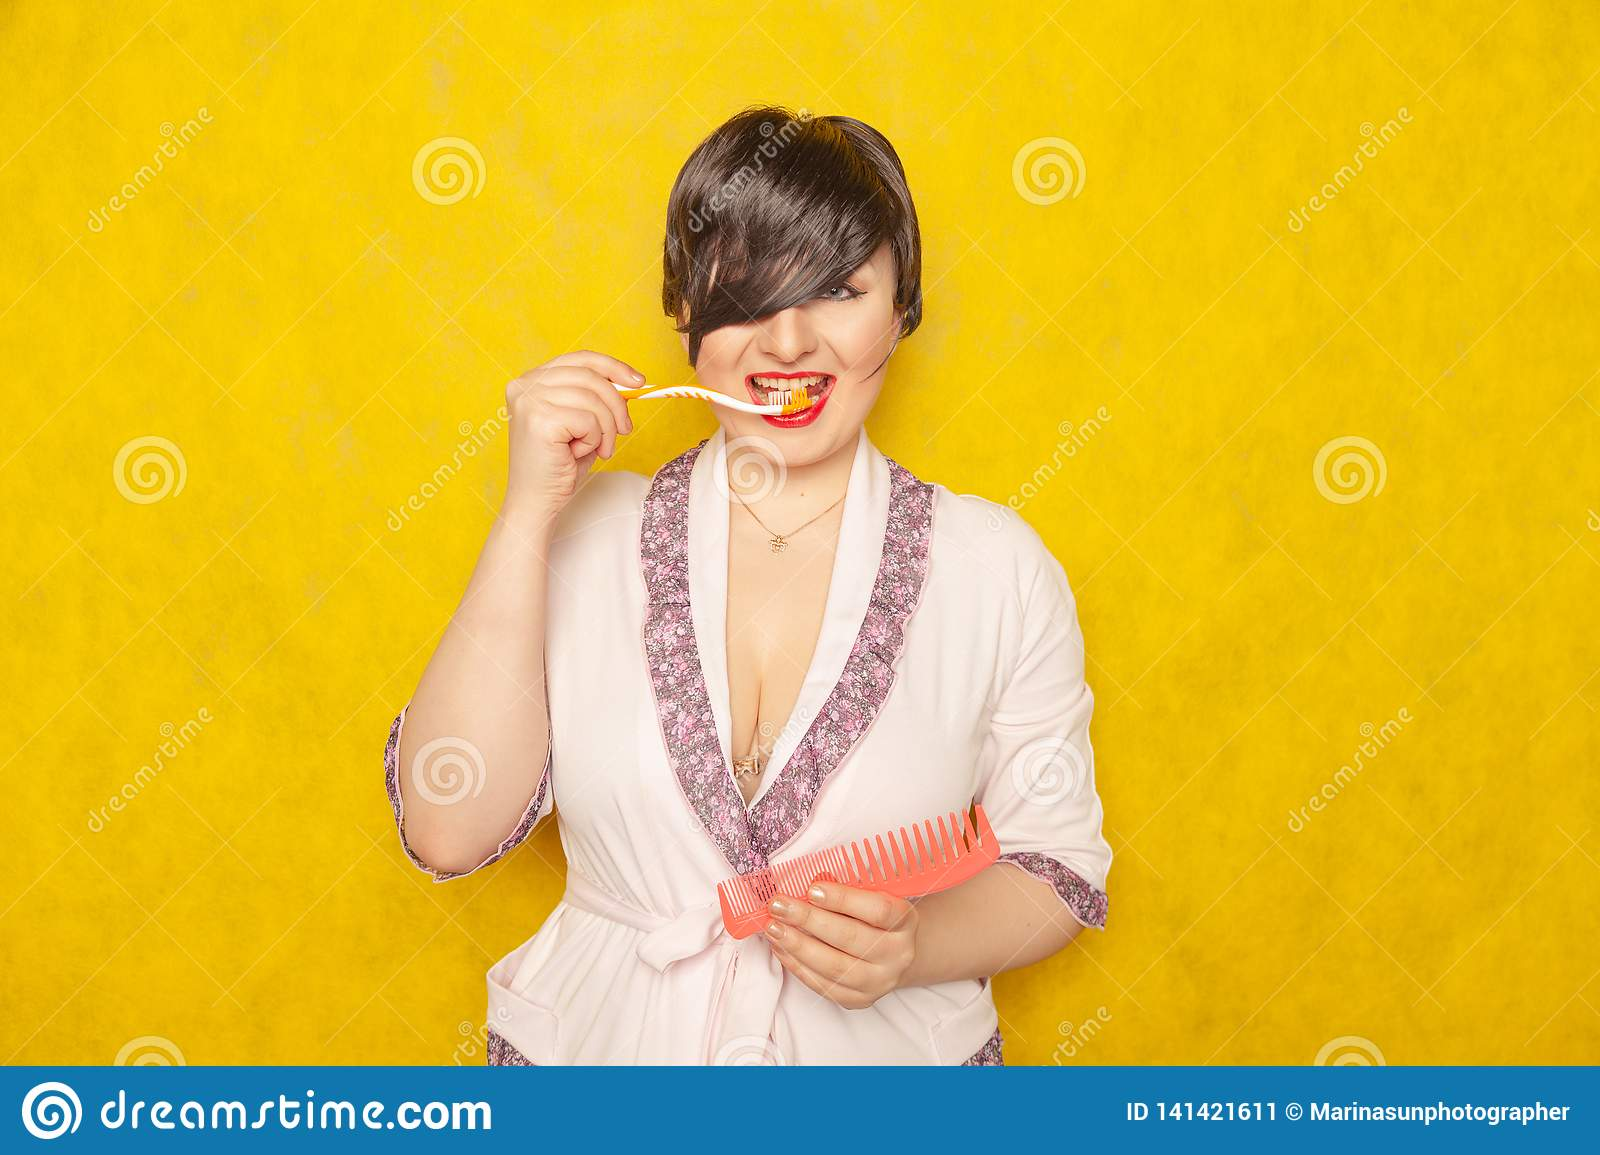 Cute chubby girl in a pink robe stands with a comb and toothbrush on a yellow background in the Studio